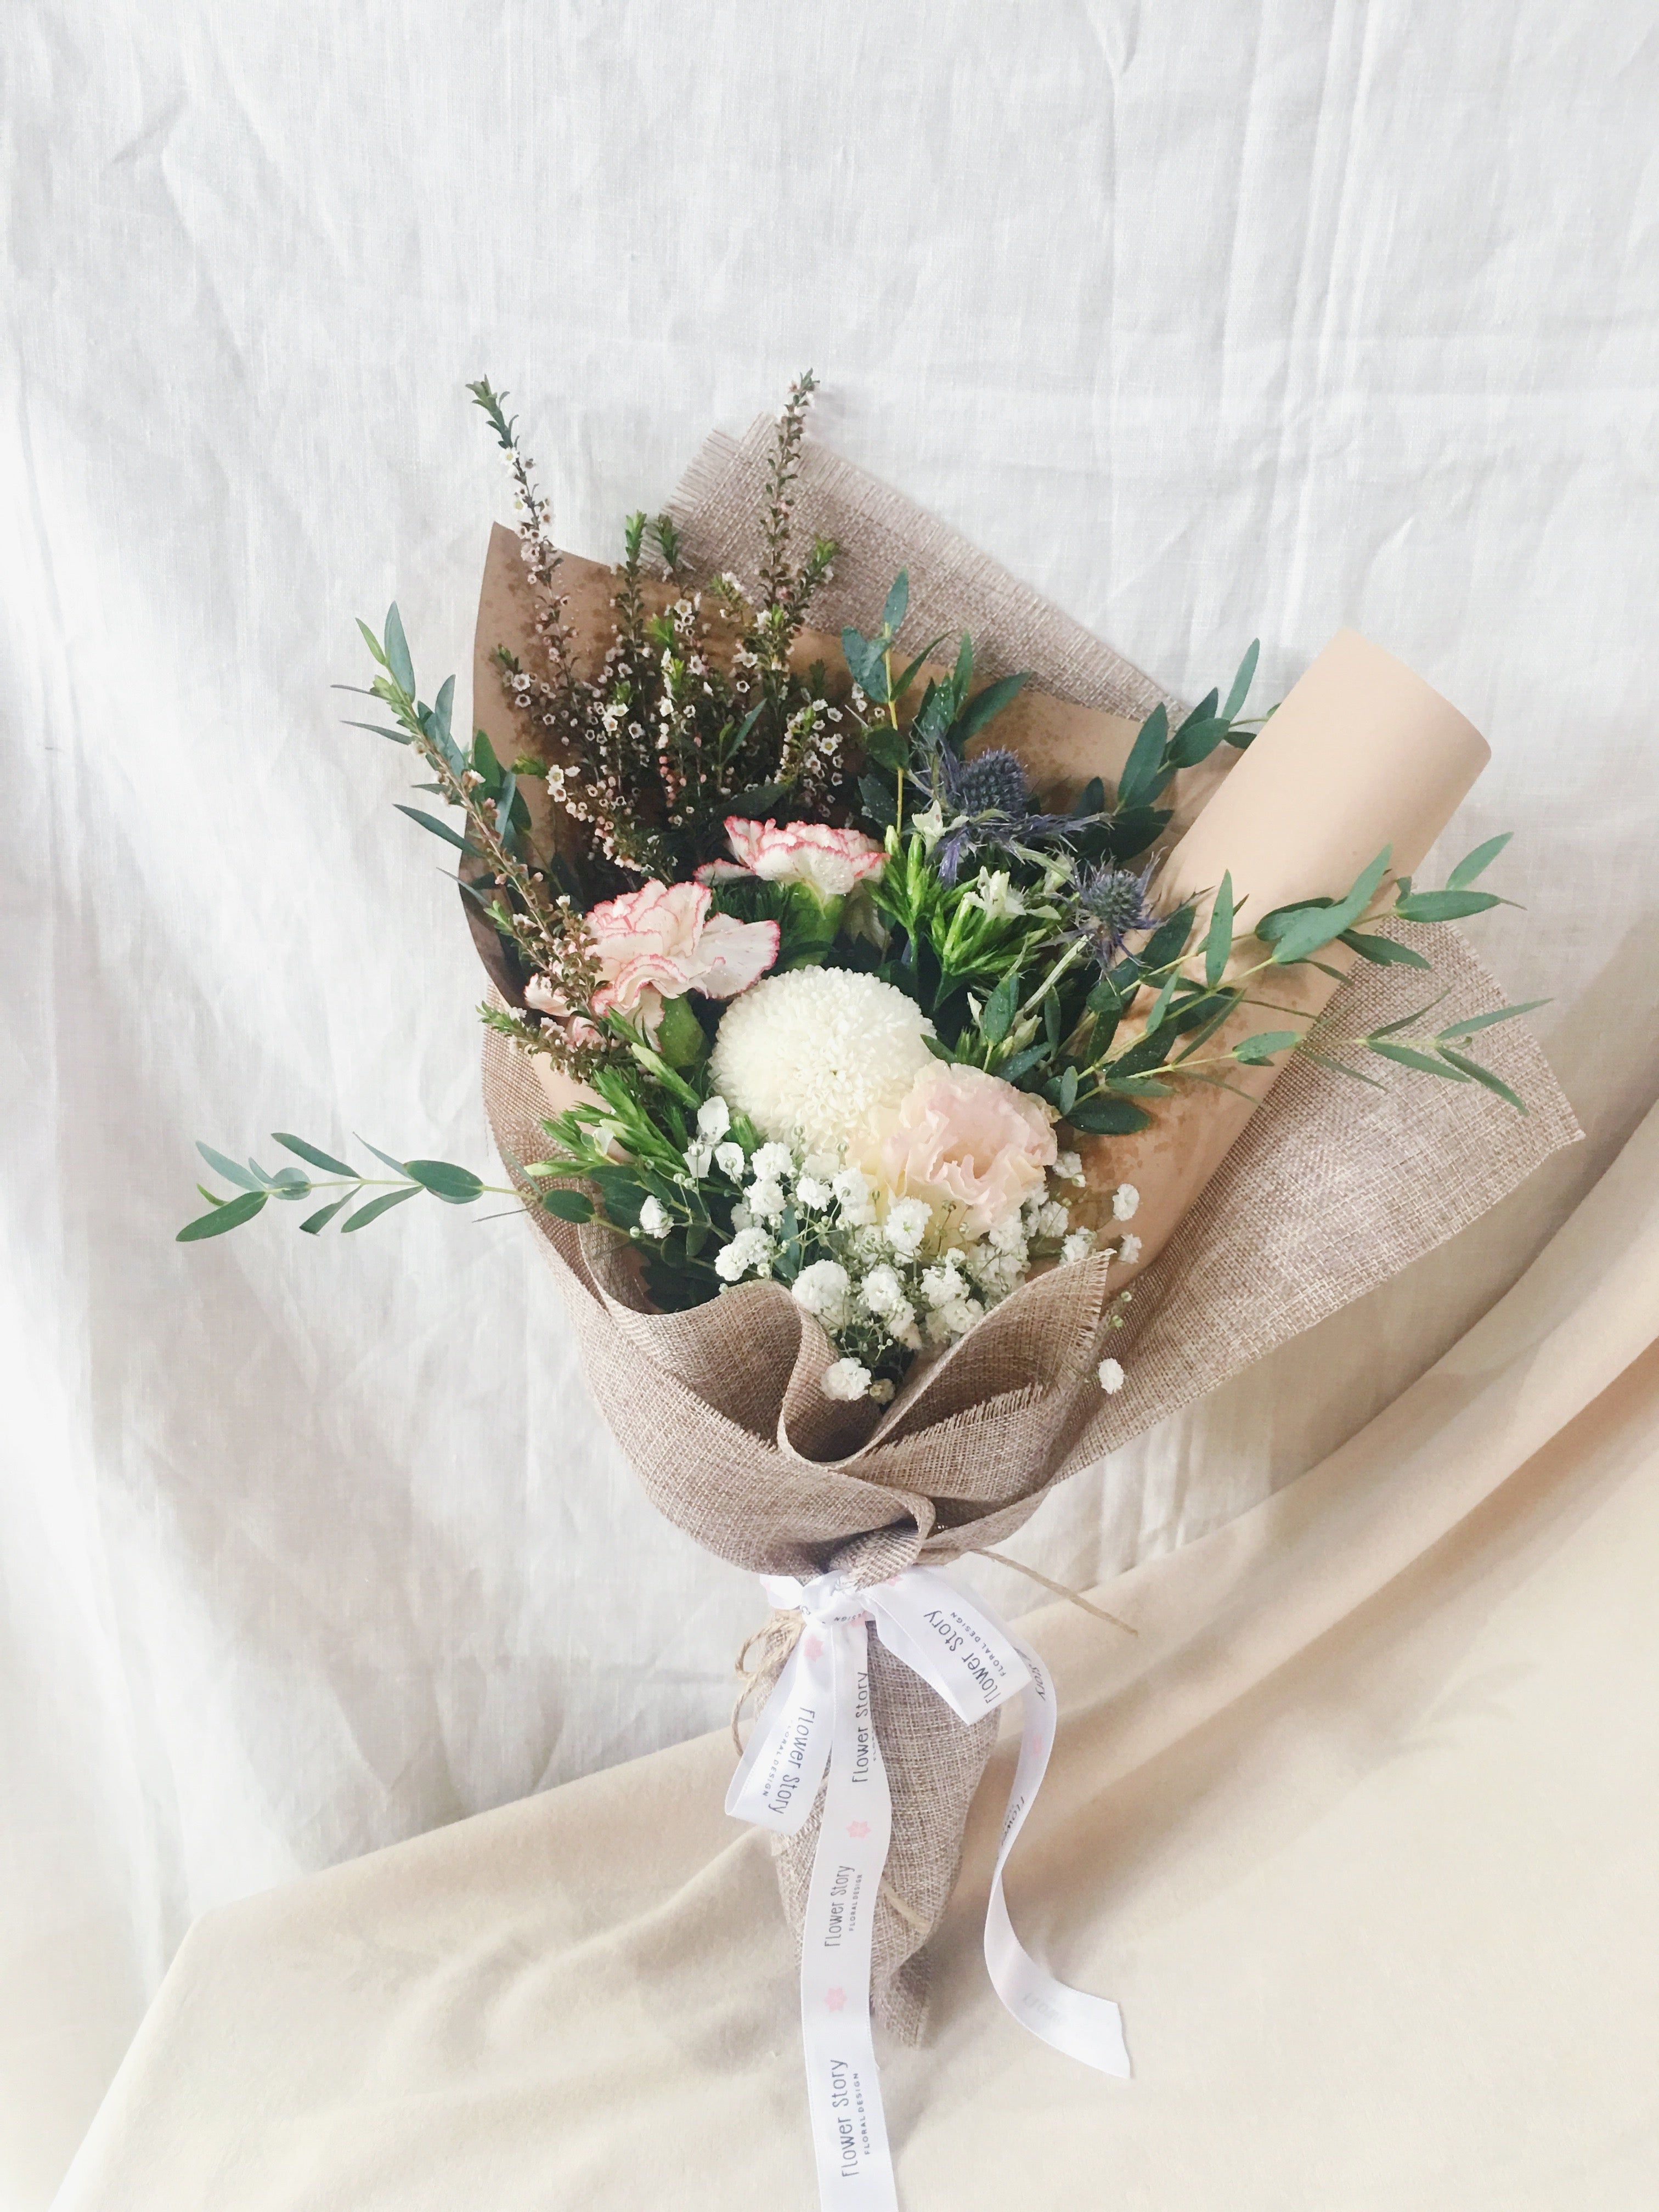 Bouquet of the Week: 25 Sep - 1 Oct